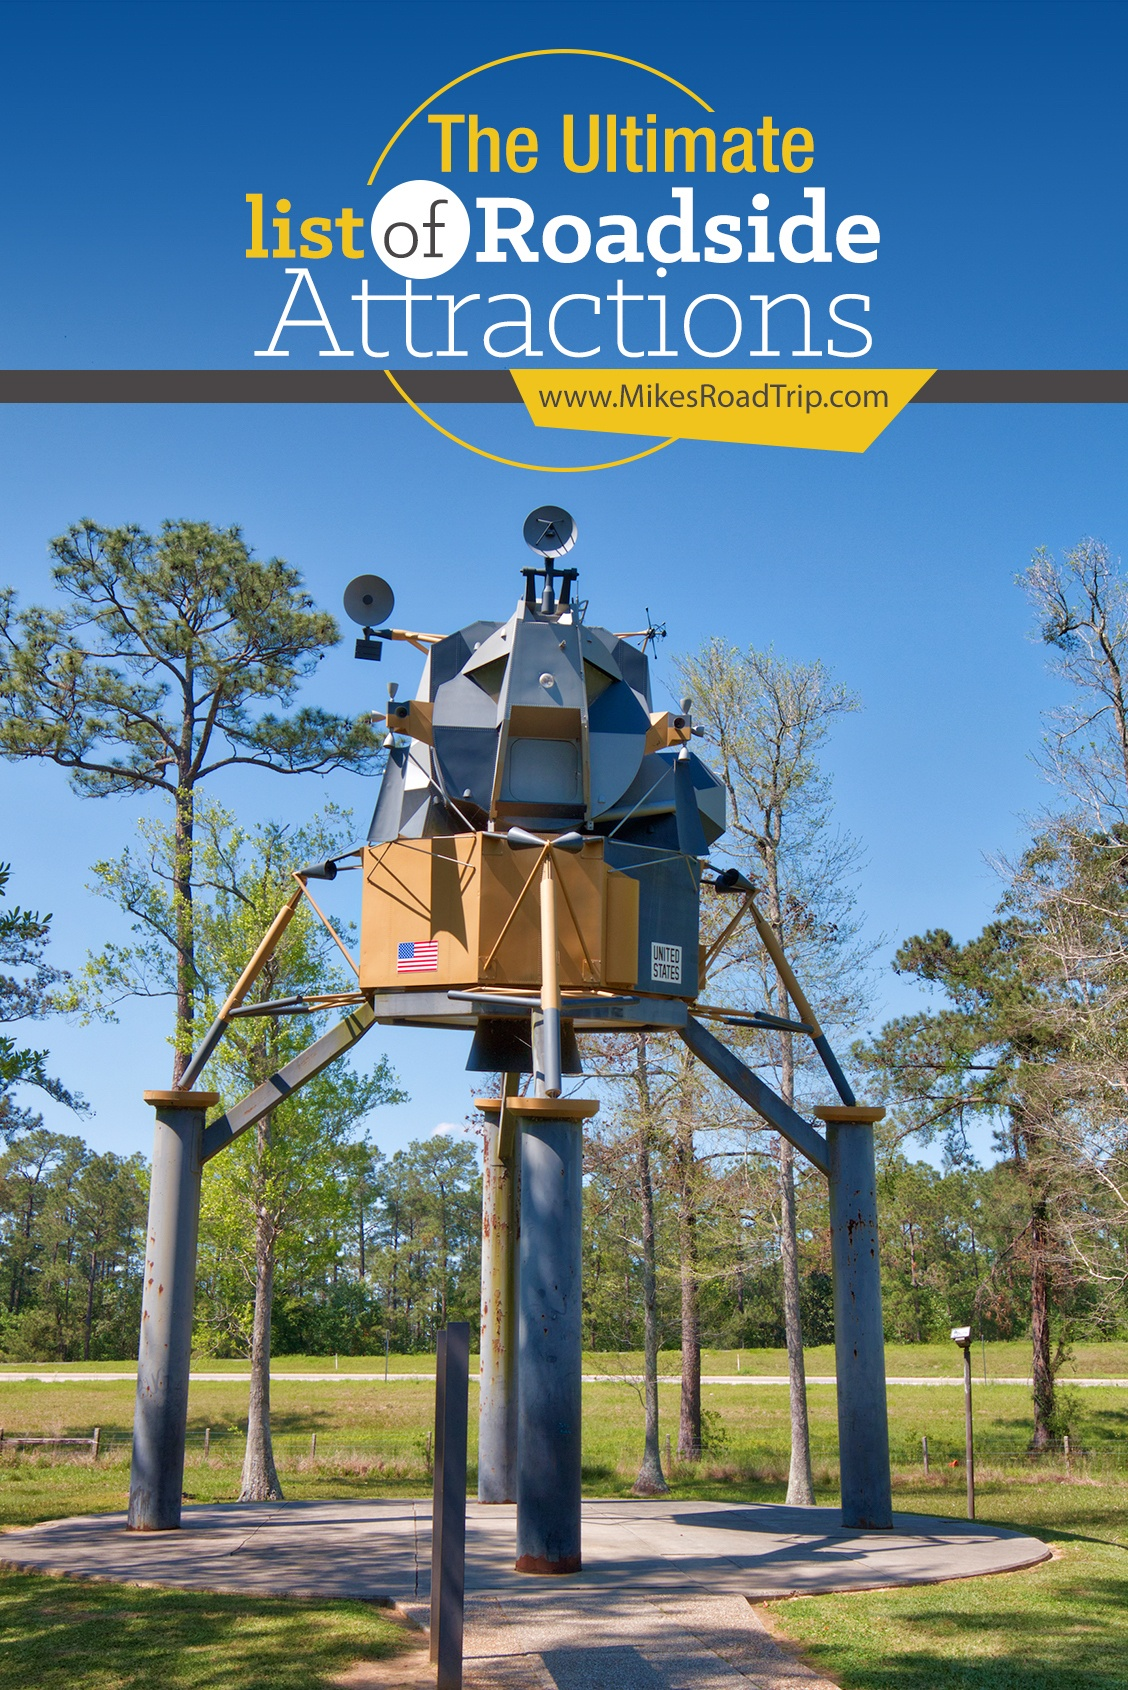 The ultimate list of roadside attractions by MikesRoadTrip.com